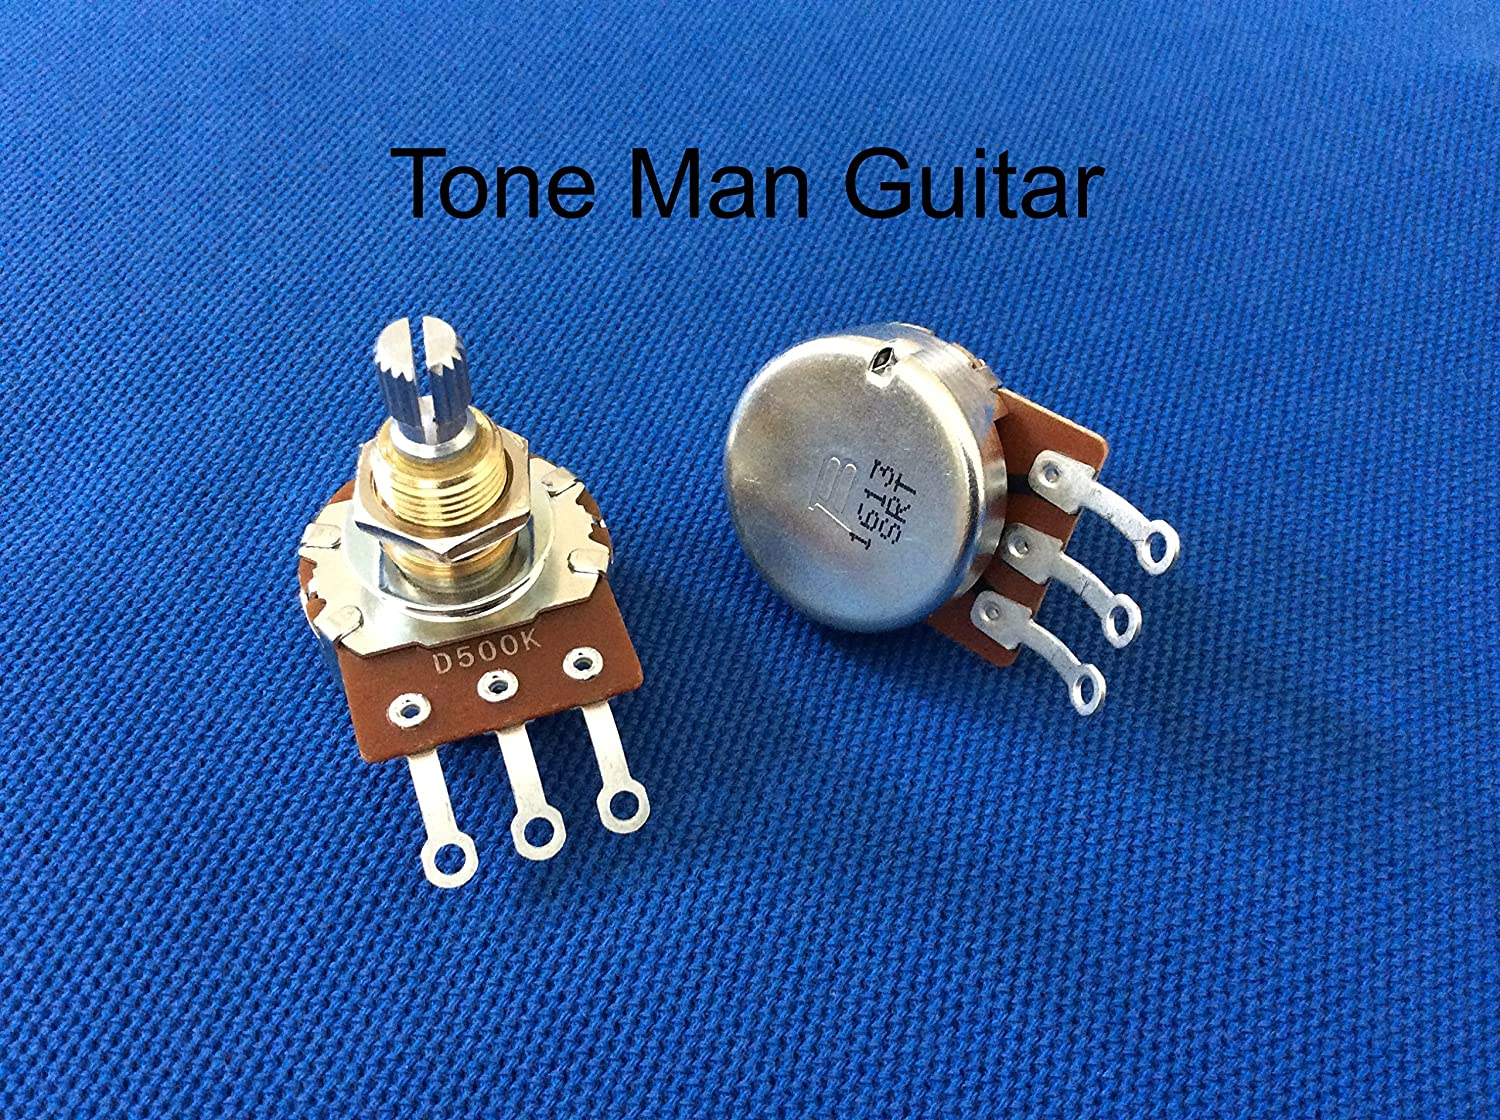 Gibson Epiphone Les Paul Jr Prewired Wiring Harness Sg Capacitor And 50 S 50s Style 2 Controls Paper In Oil Vintage Tone Cap Musical Instruments